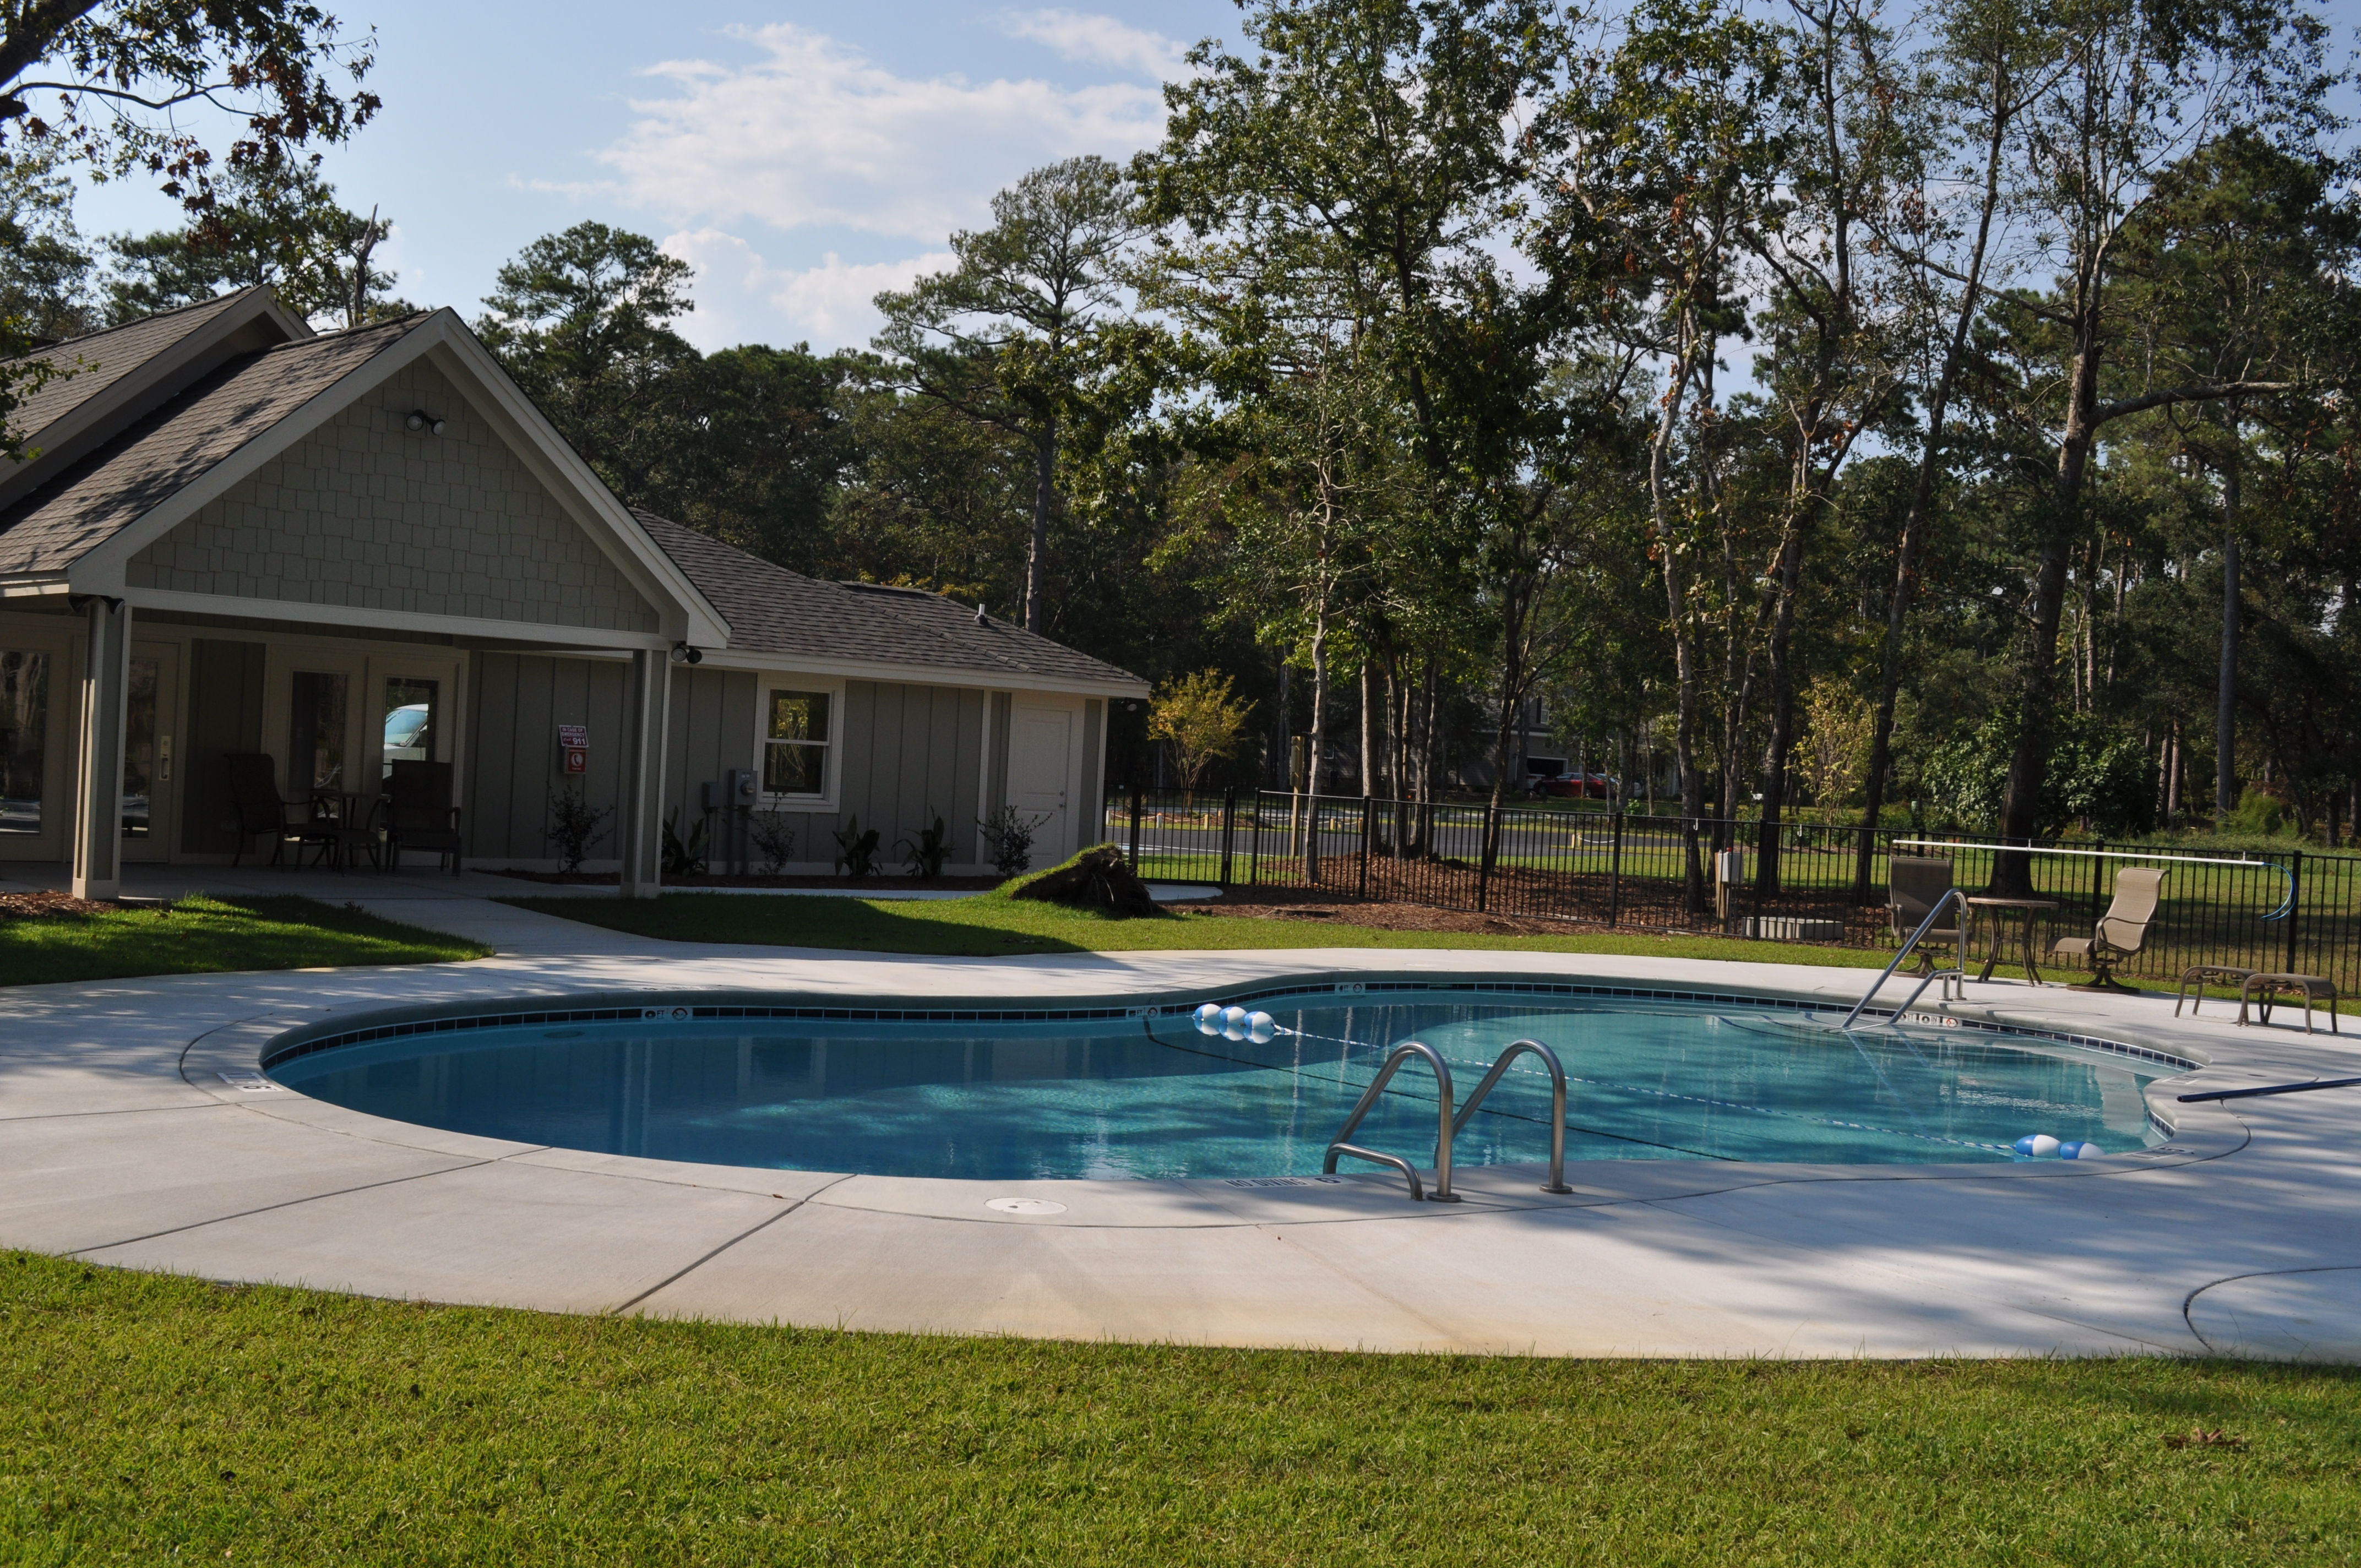 Commercial Swimming Pool Morehead City